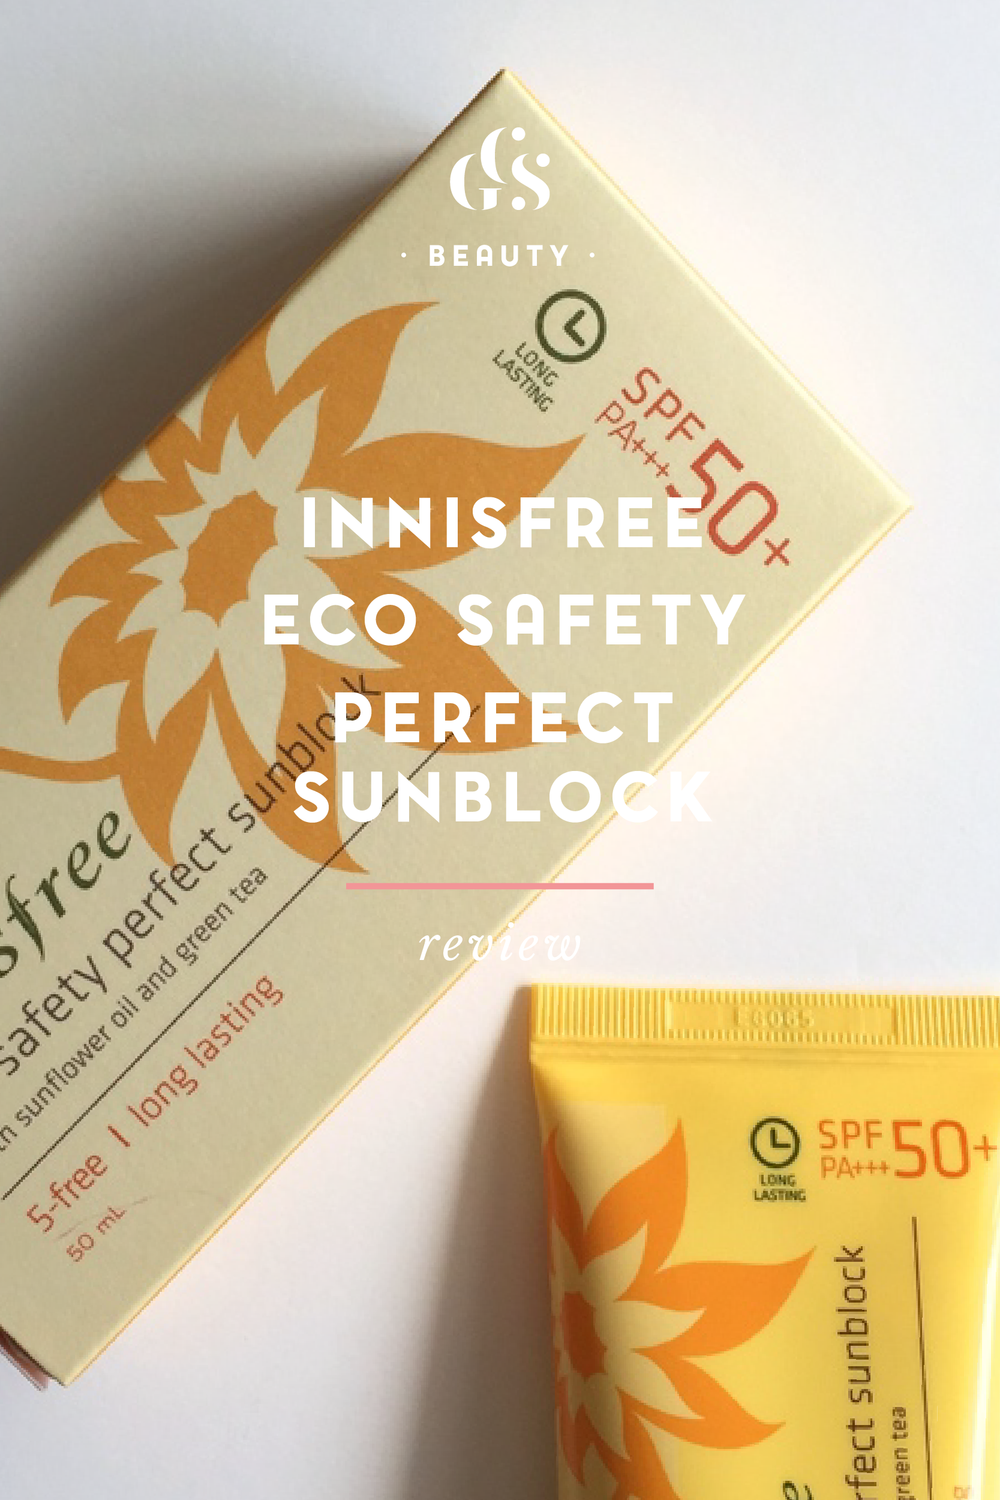 Innisfree Eco Safety Perfect Sunblock 50+ PA++ {Review}